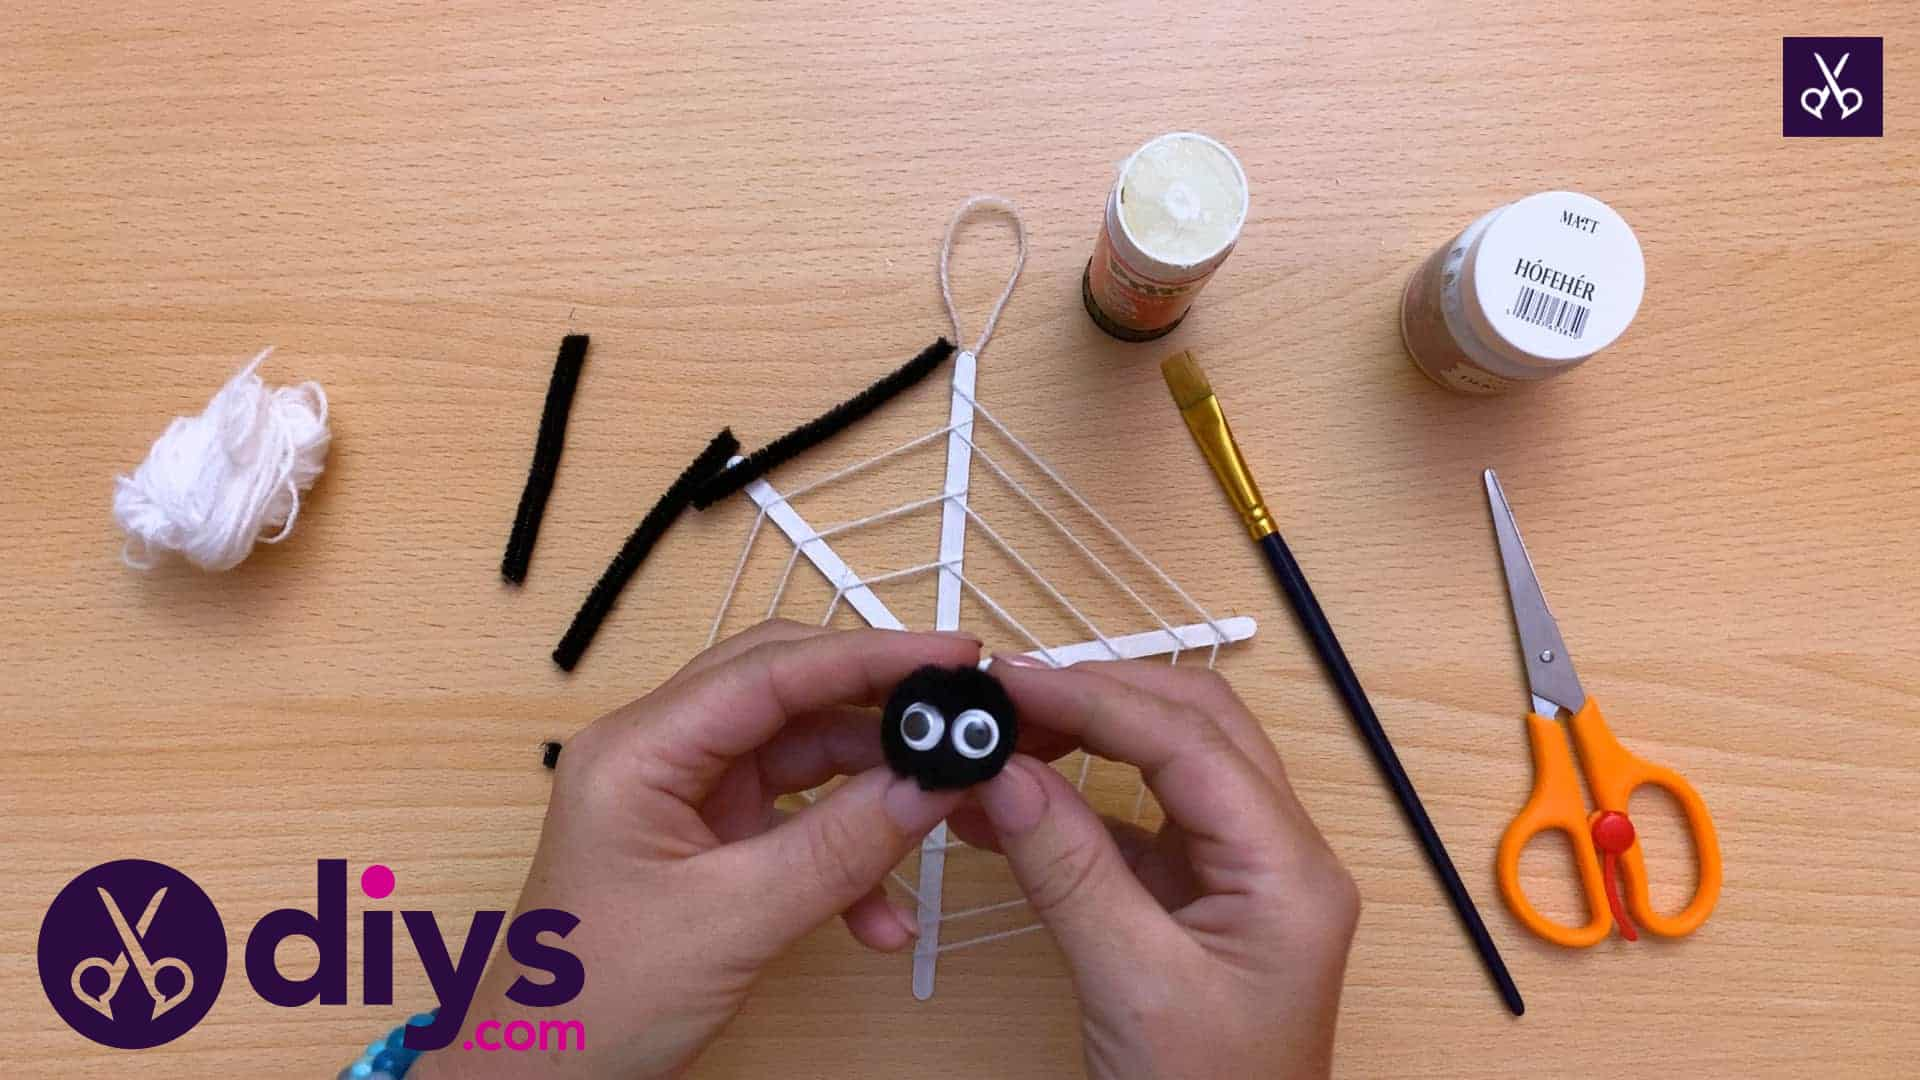 Diy spider web decoration for halloween pompo